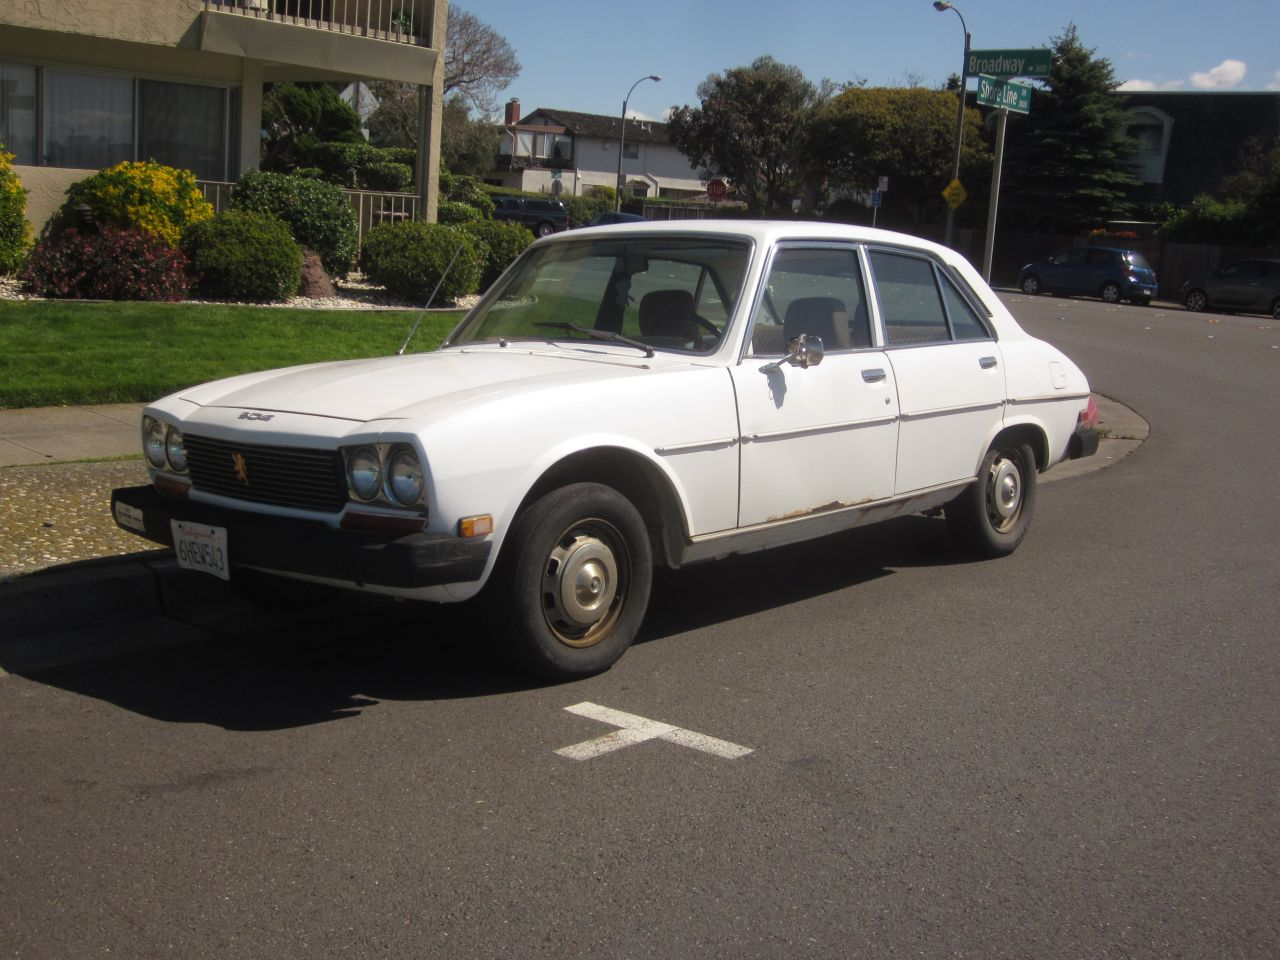 down on the street: peugeot 504 diesel - the truth about cars